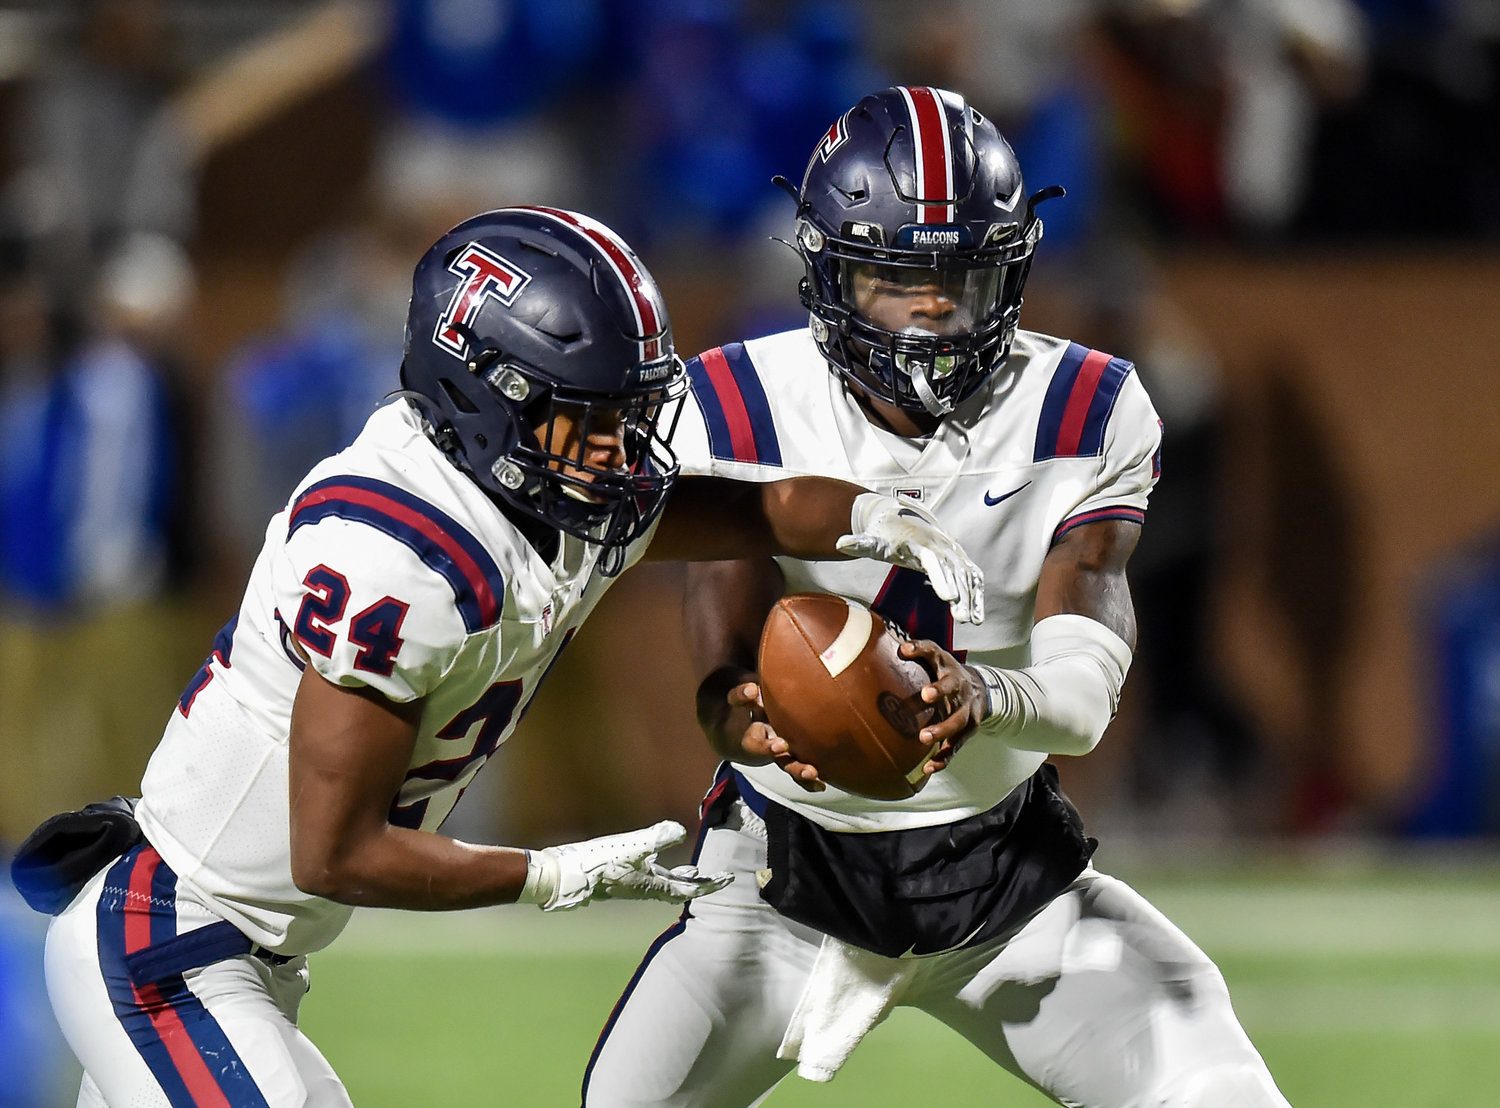 Katy, Tx. Oct. 25, 2019: Tompkins QB Jalen Milroe (4) hands the ball off to Tompkins R.j. Smith (24) during a game between Taylor Mustangs and Tompkins Falcons at Rhodes Stadium in Katy. (Photo by Mark Goodman / Katy Times)